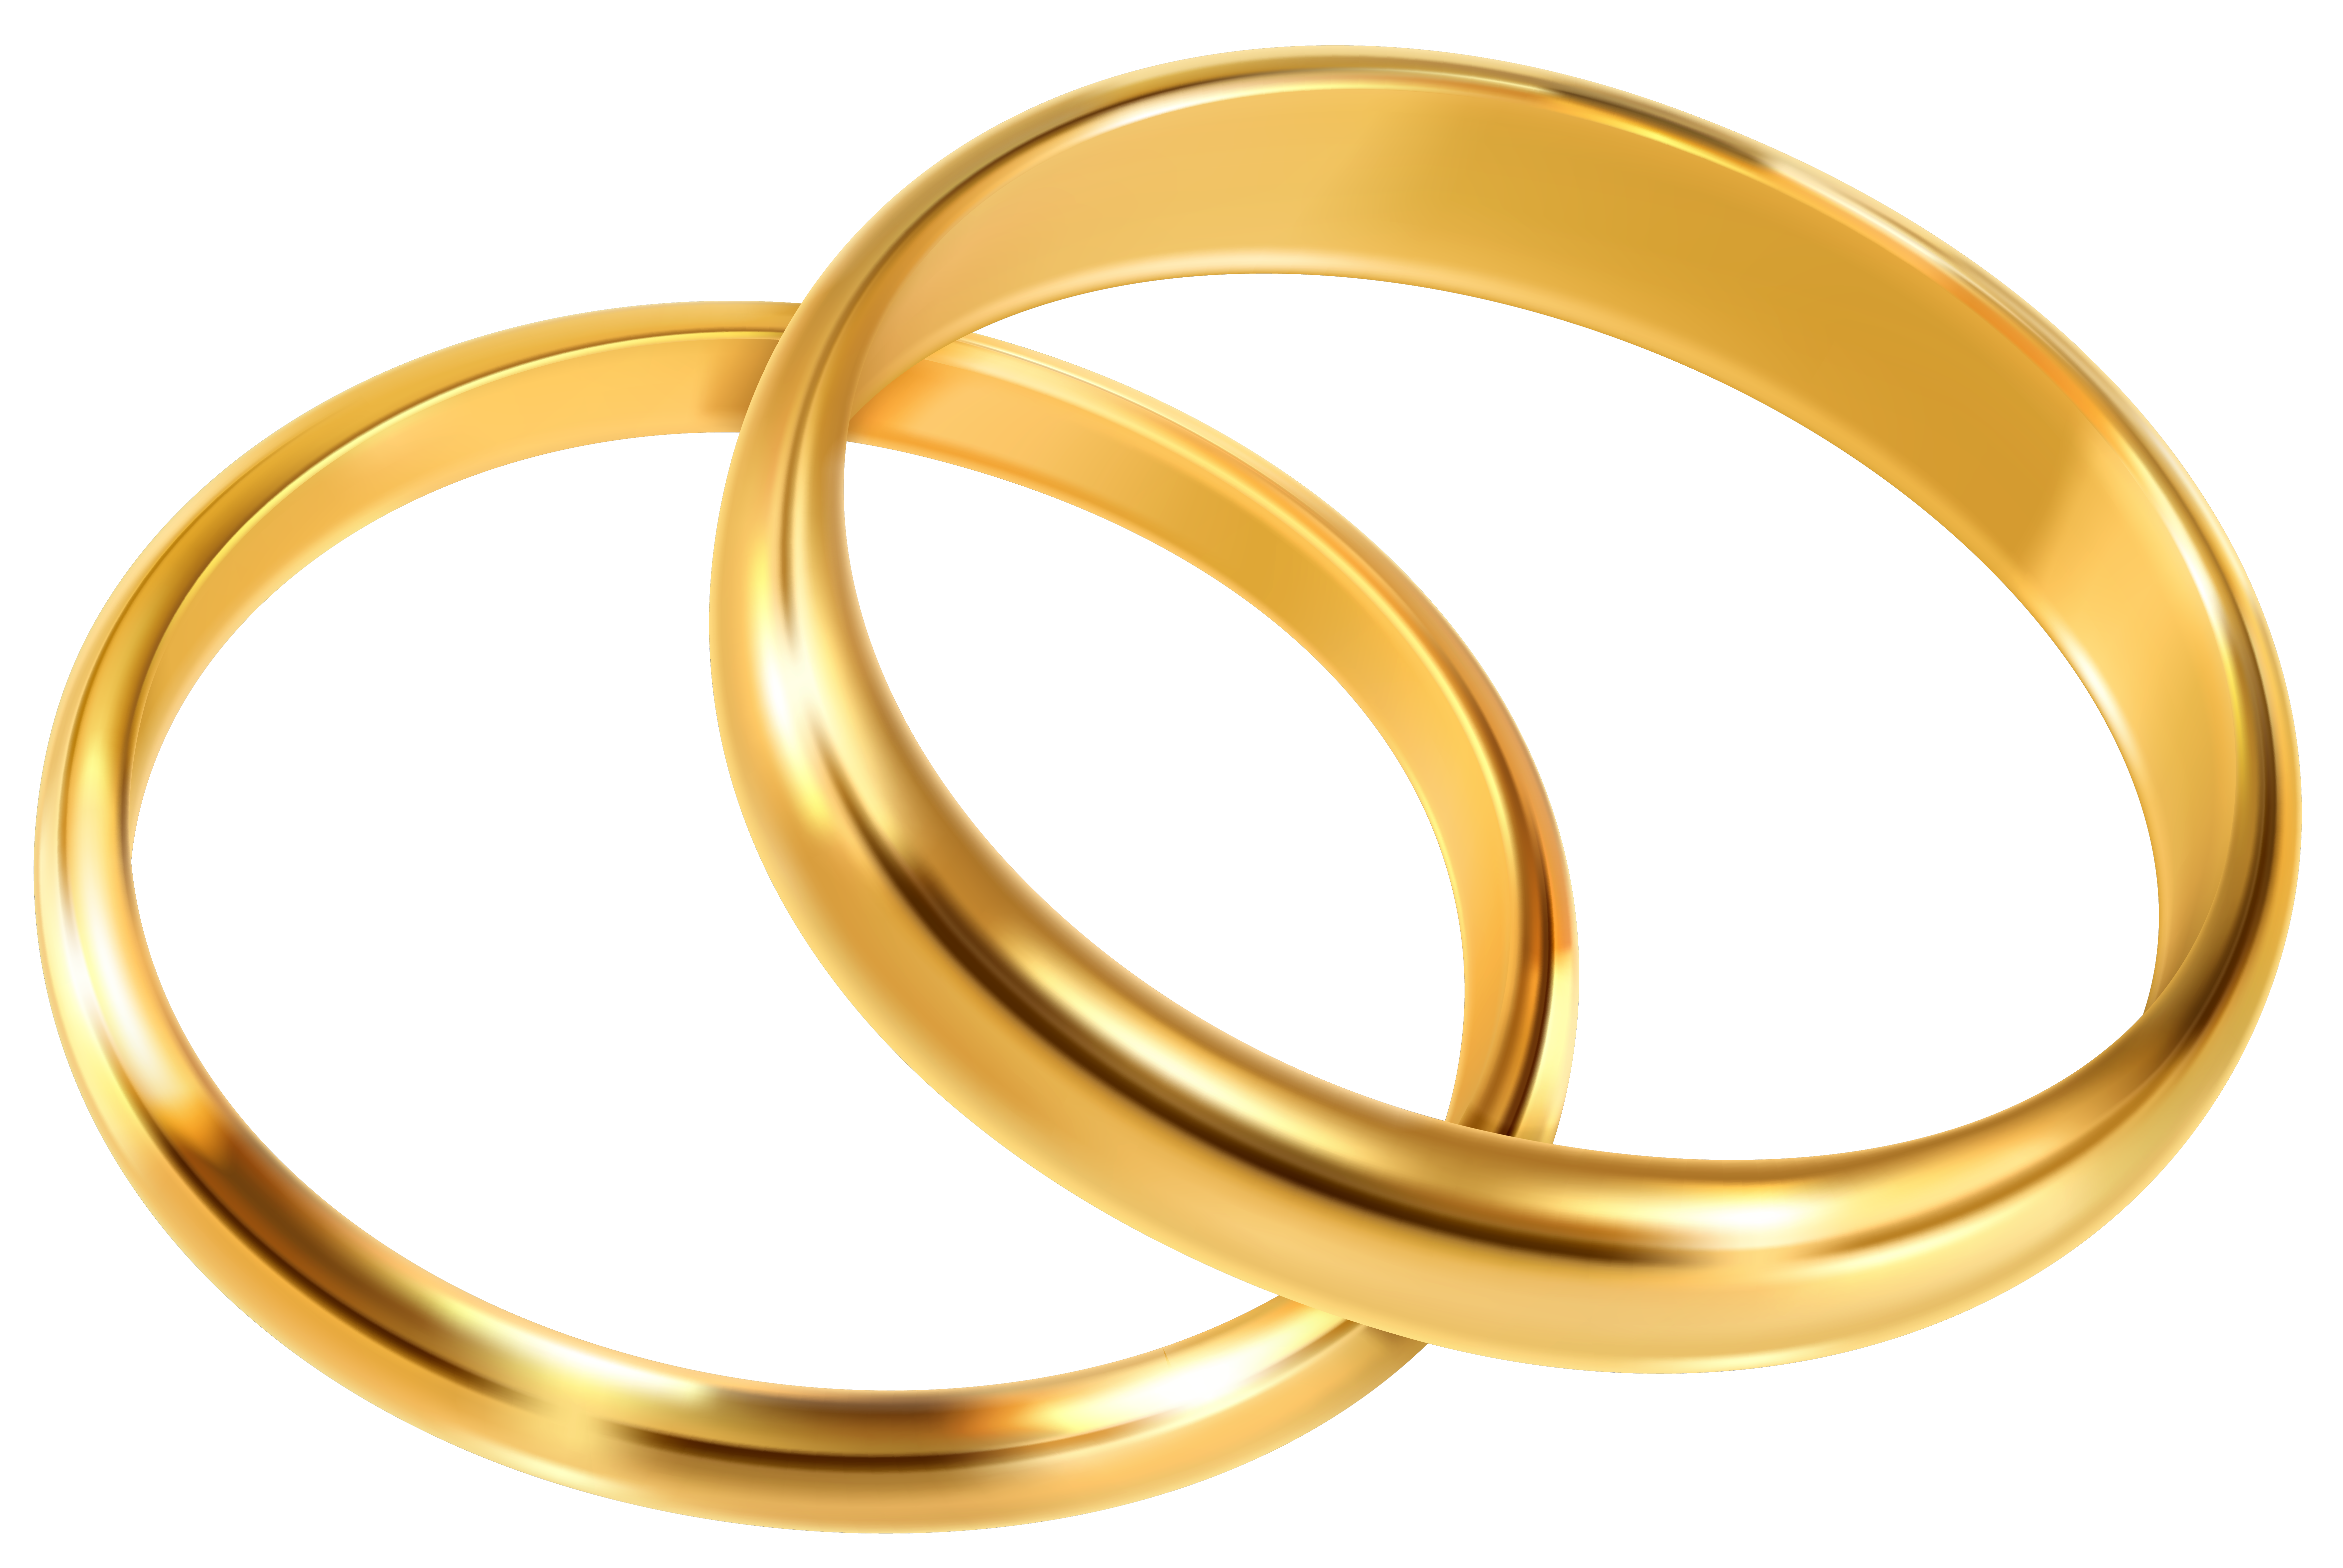 7047x4717 Wedding Rings Png Clip Art Imageu200b Gallery Yopriceville